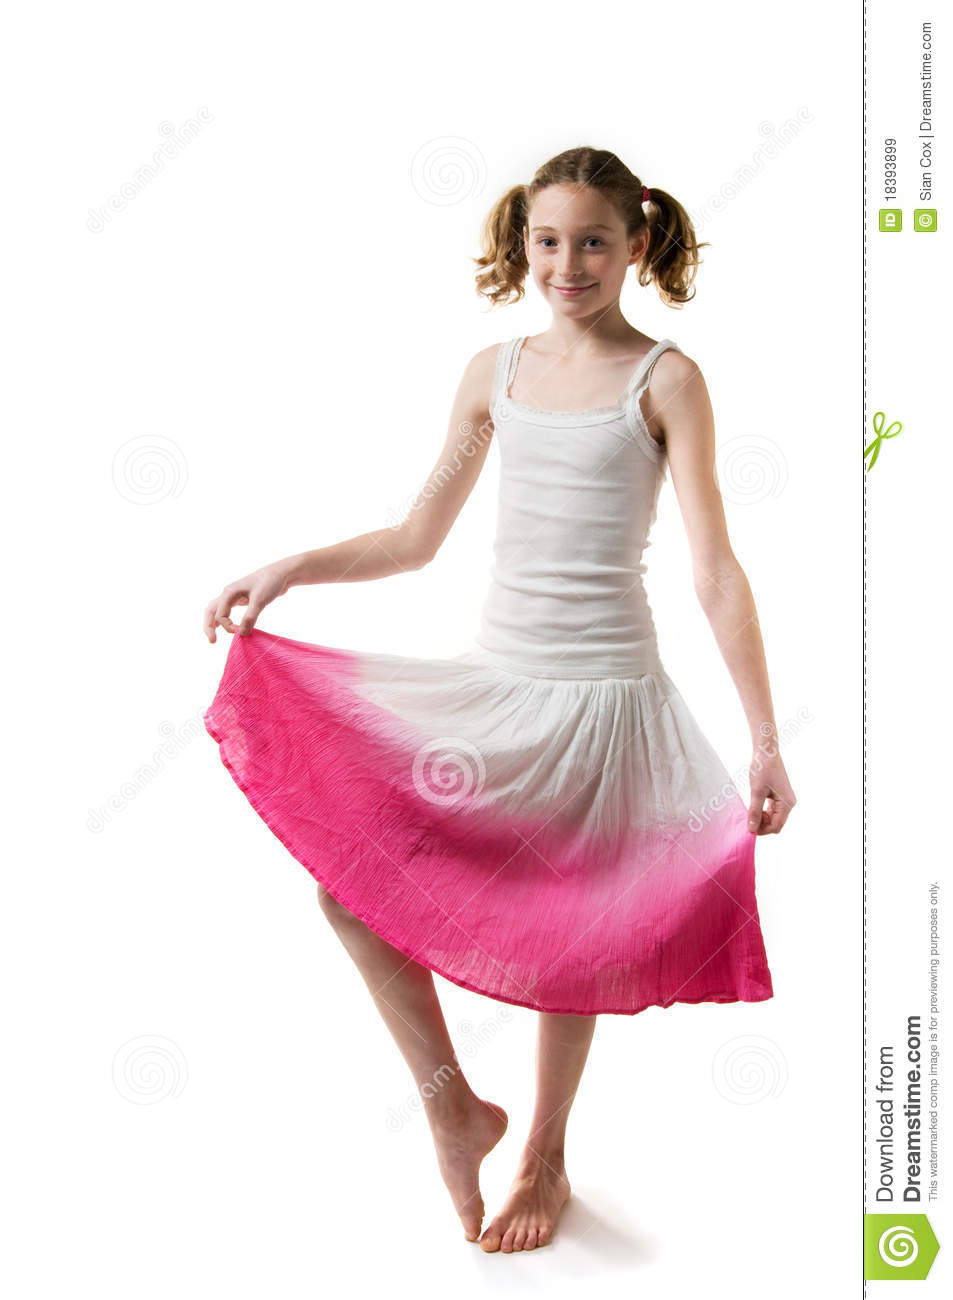 Pretty Girl In A Skirt Royalty Free Stock Images - Image: 18393899